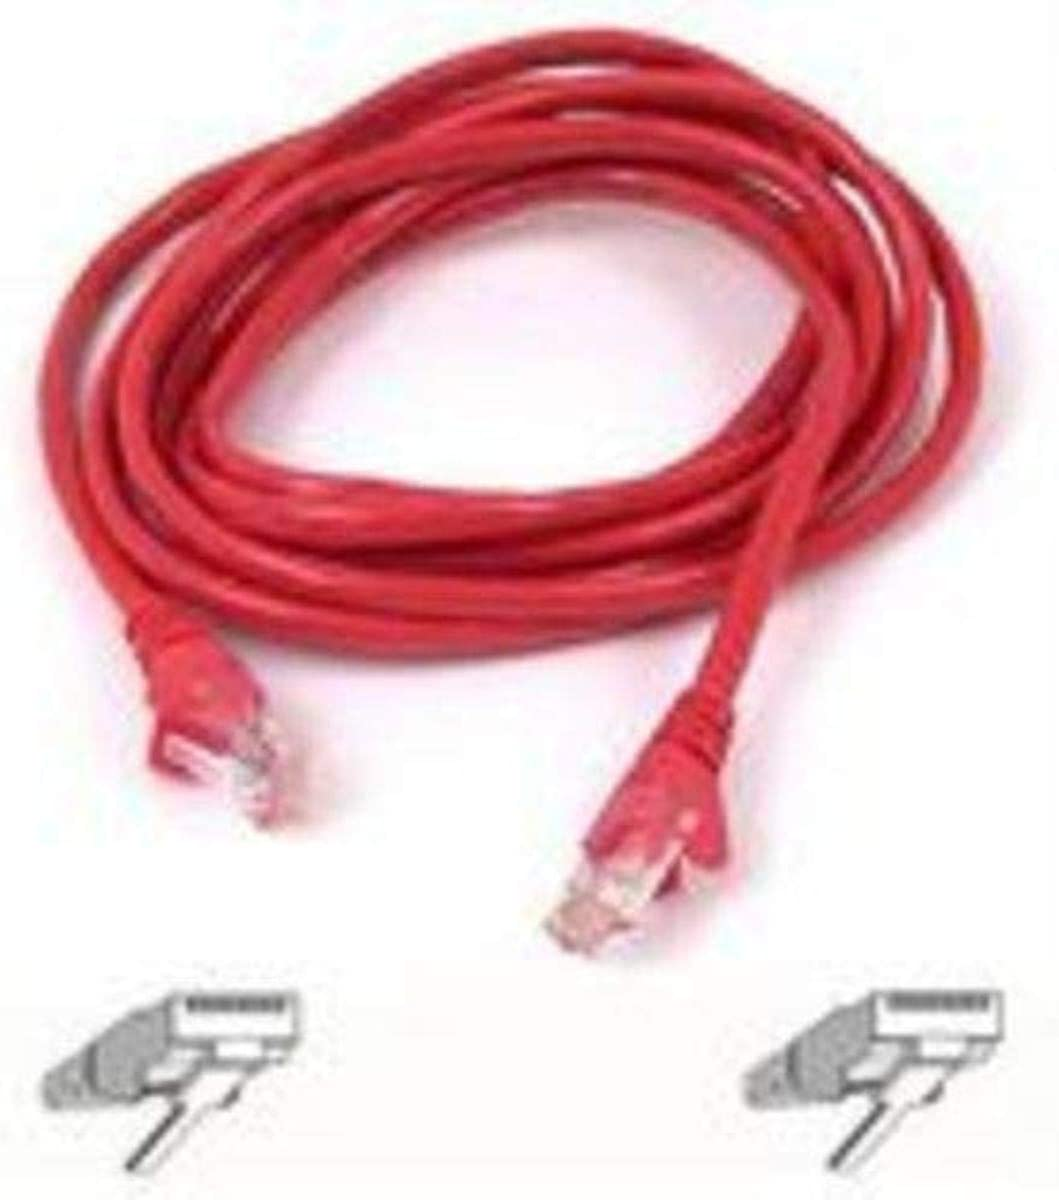 Made in USA 5e Crossover Cable 35 Ft Cat